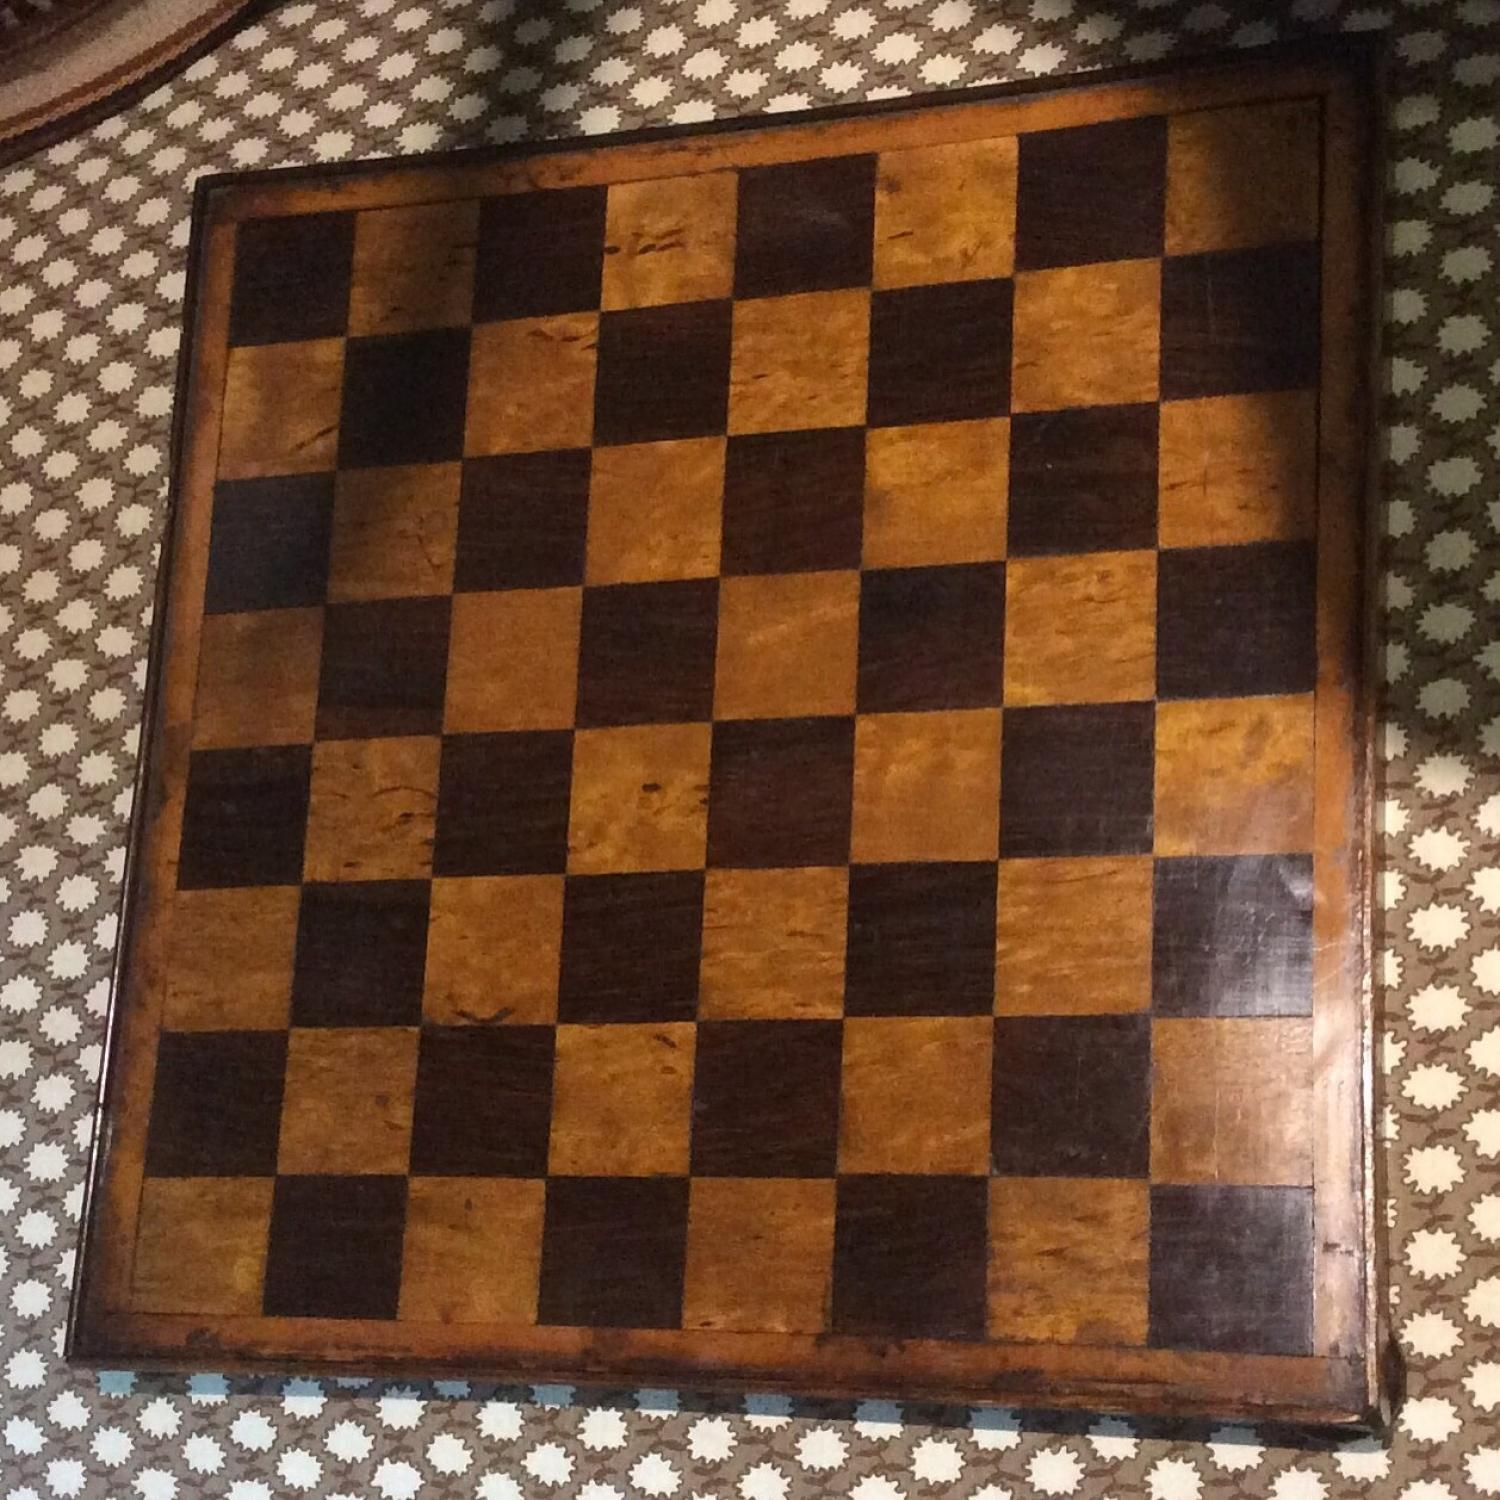 Victorian Chess Board